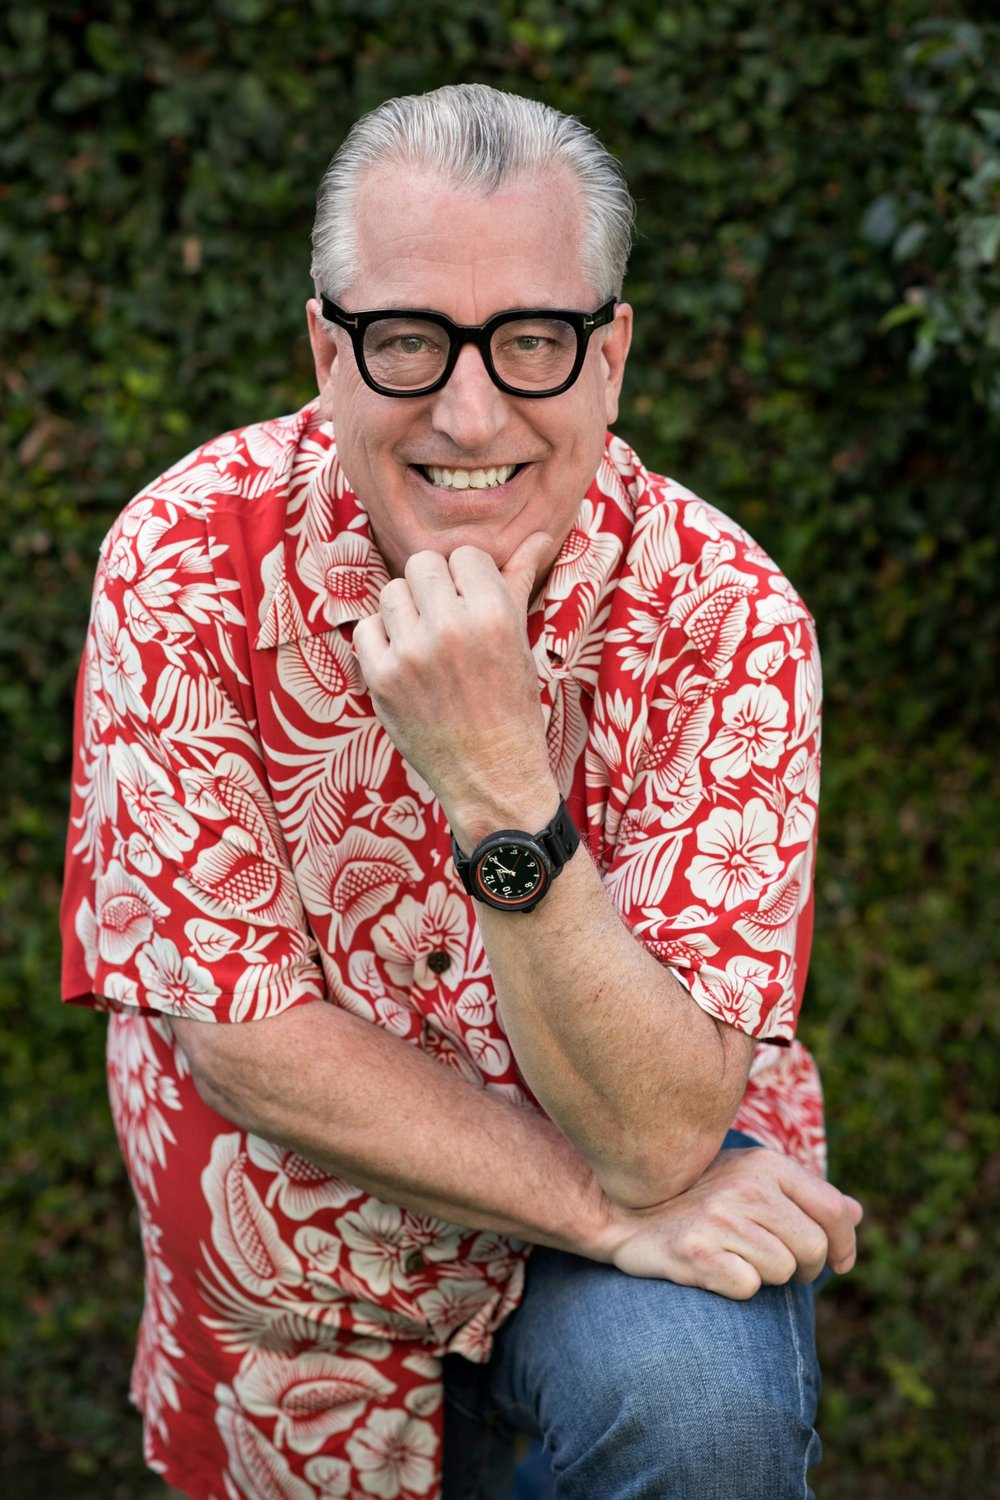 Smiling bespectacled man wearing a red hawaiian shirt